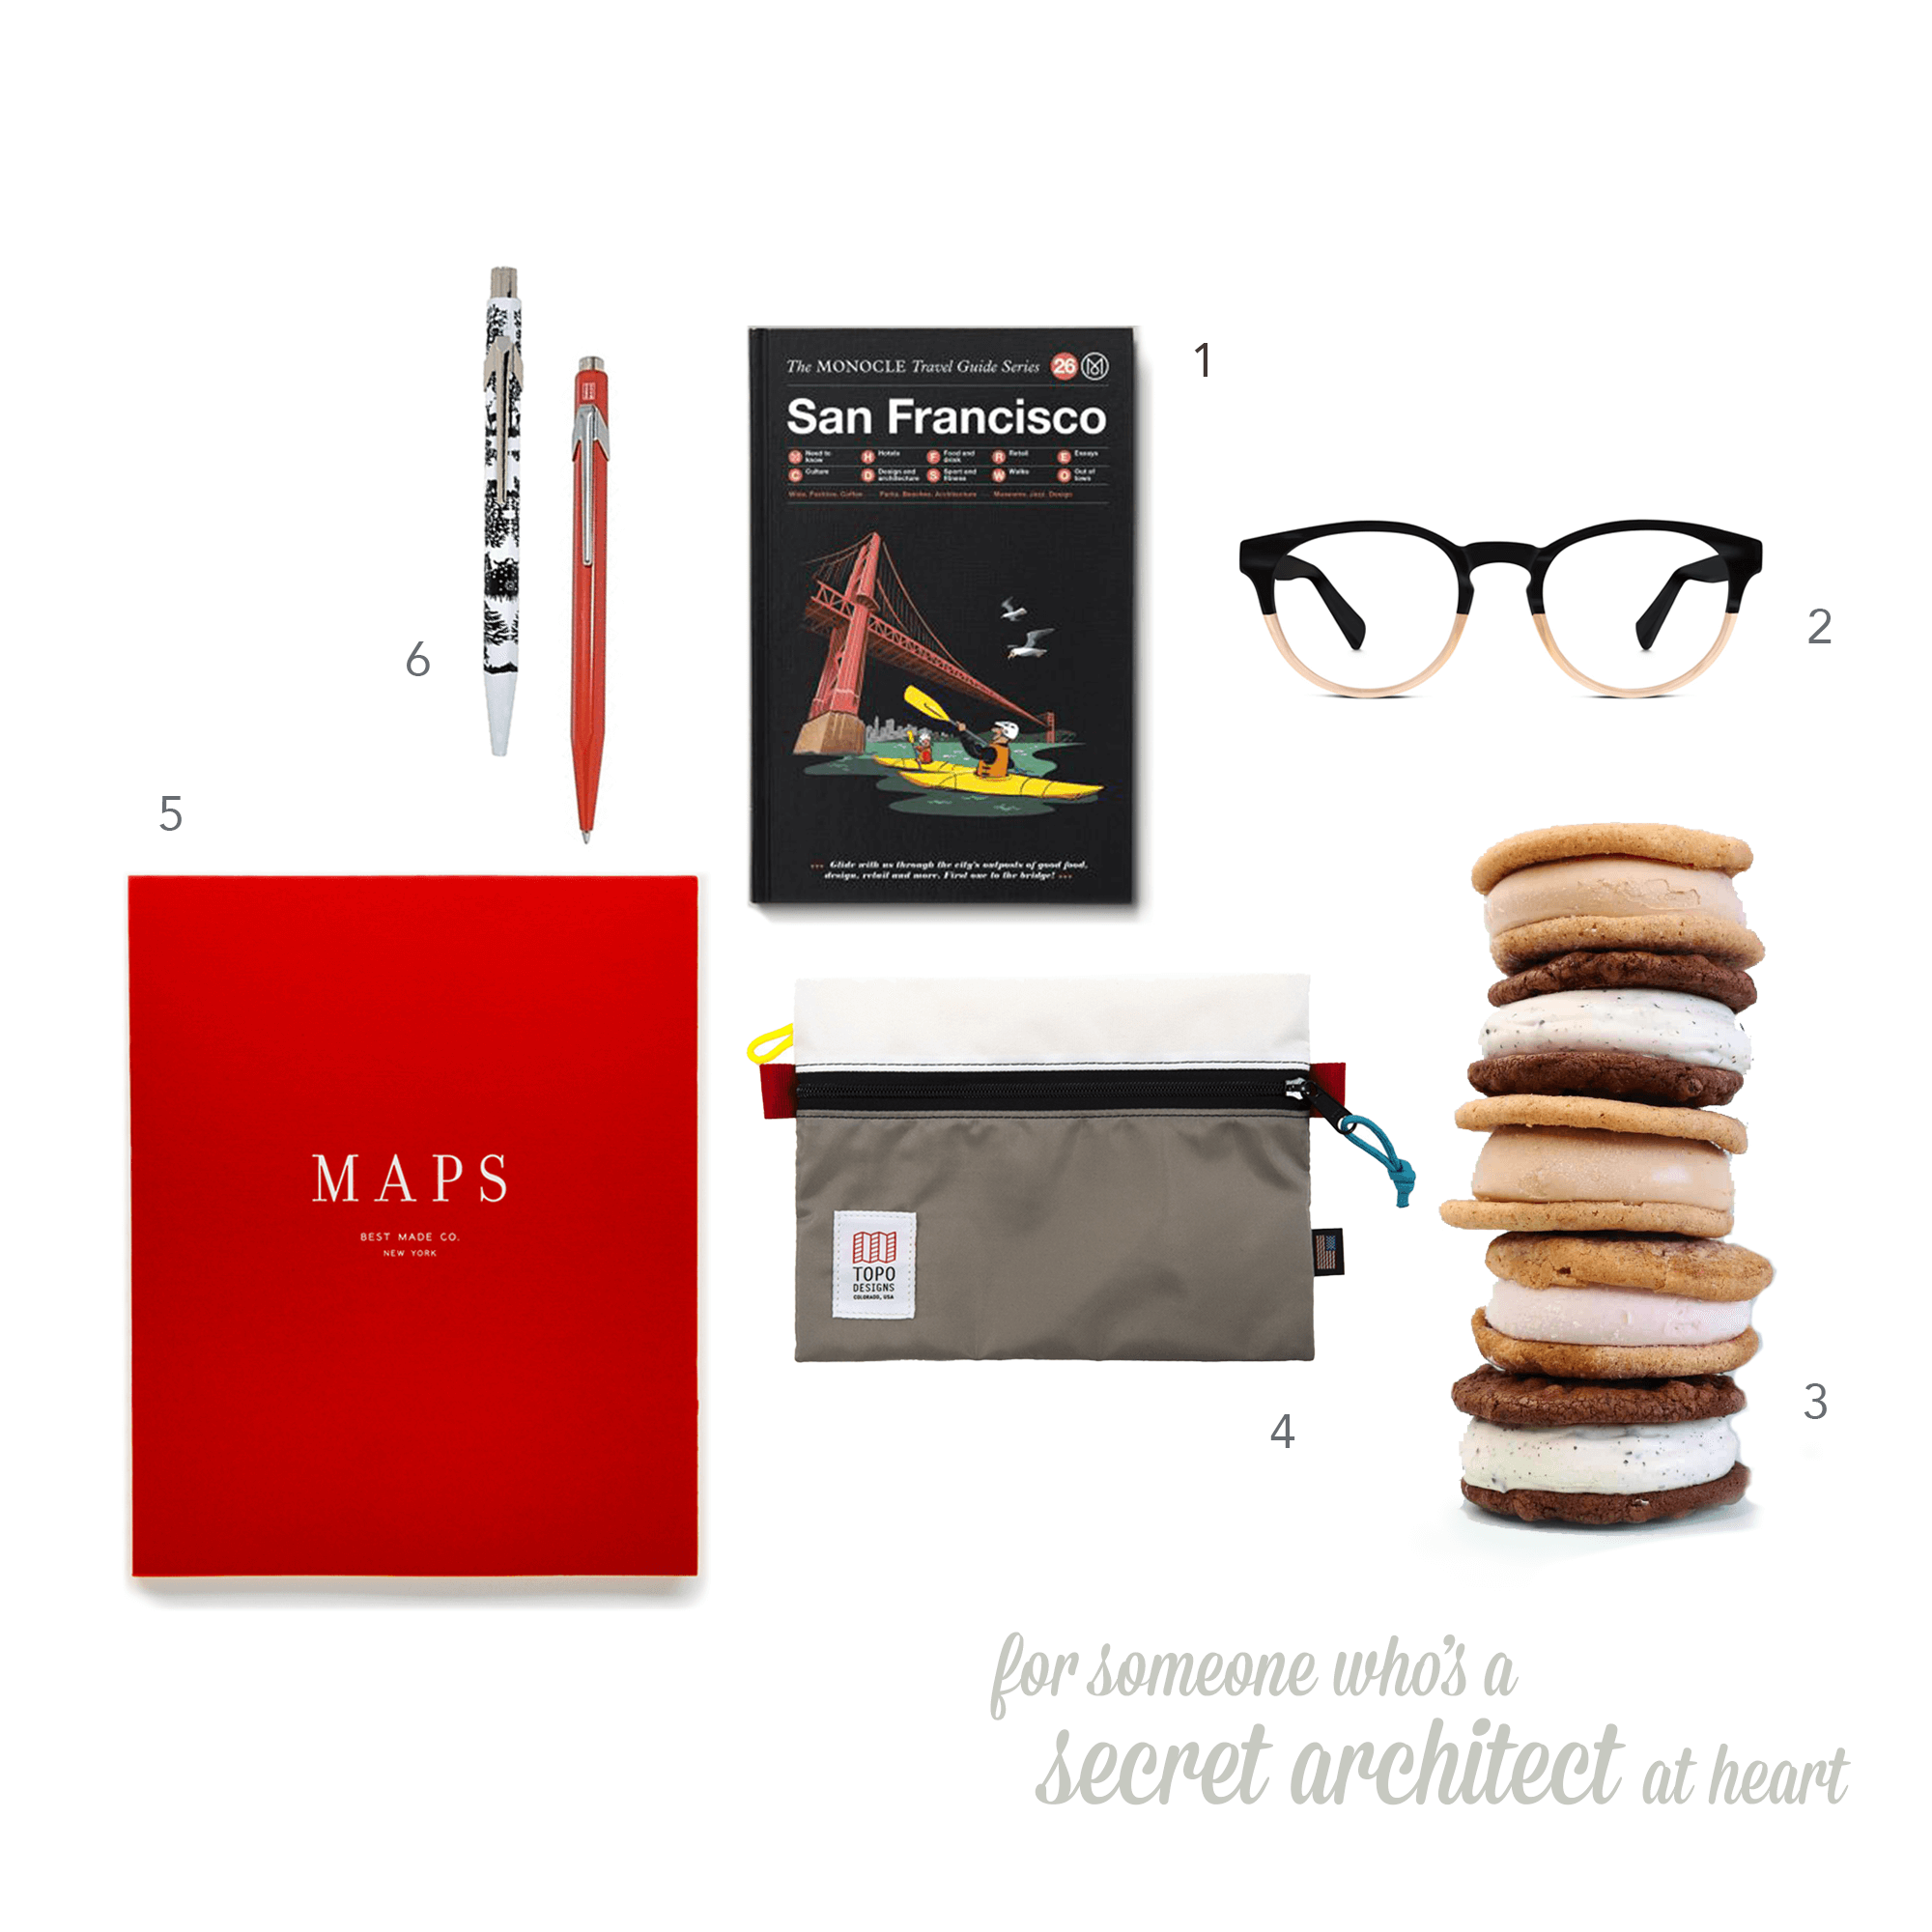 01  The Monocle  Travel Guide $15  02  Warby Parker  Percy eyeglasses  $95  03  Coolhaus  ice cream sammies 6-pack  $59.99  04 Topo Designs  Accessory Bag  $17  05 Best Made Co.  The Map Notebook  $28  06  Caran D'ache  Ballpoint Pen  $32.99*